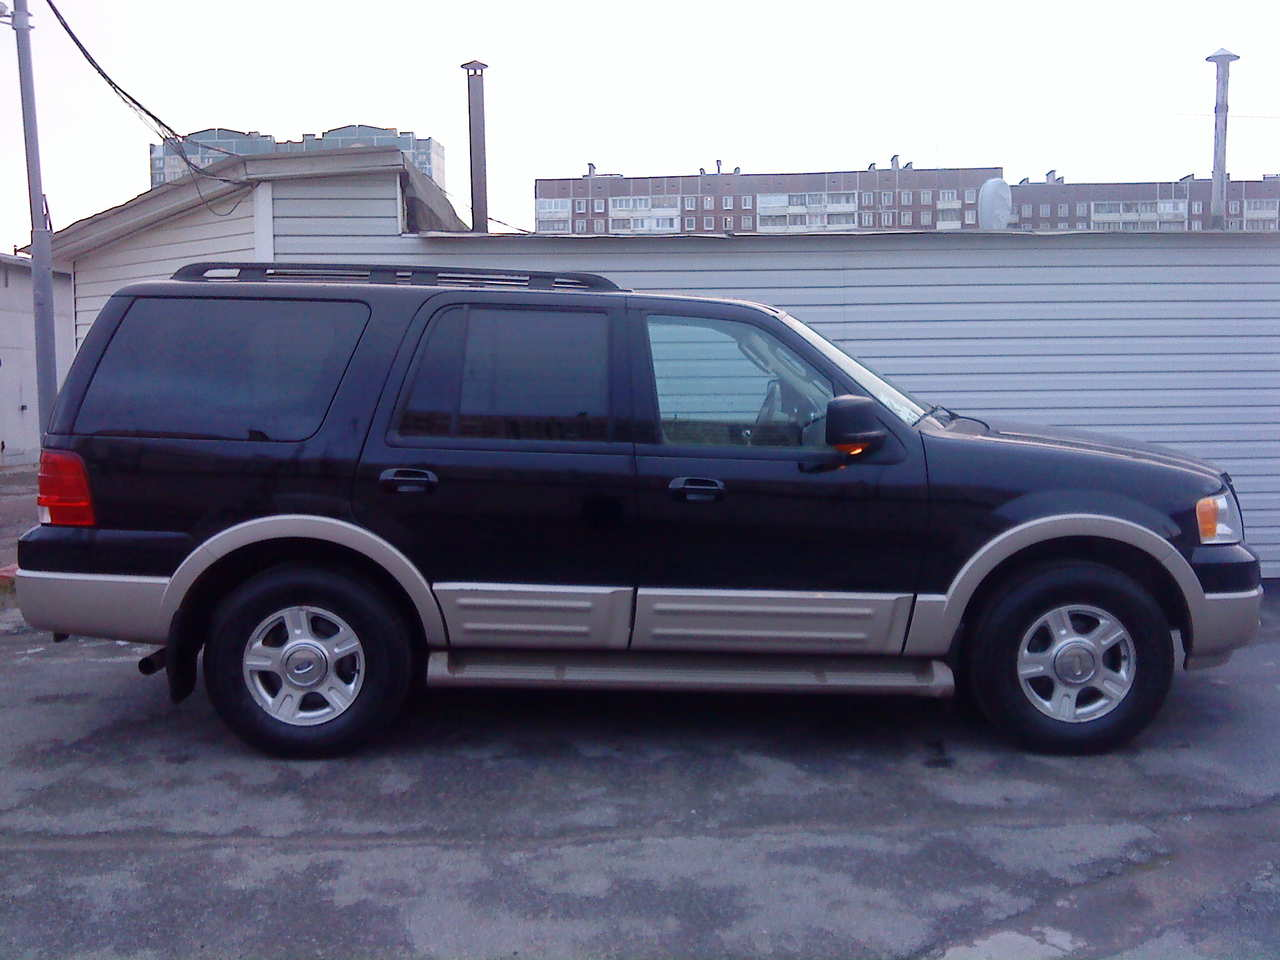 2005 Ford Expedition Specs  Engine Size 5400cm3  Fuel Type Gasoline  Transmission Gearbox Automatic